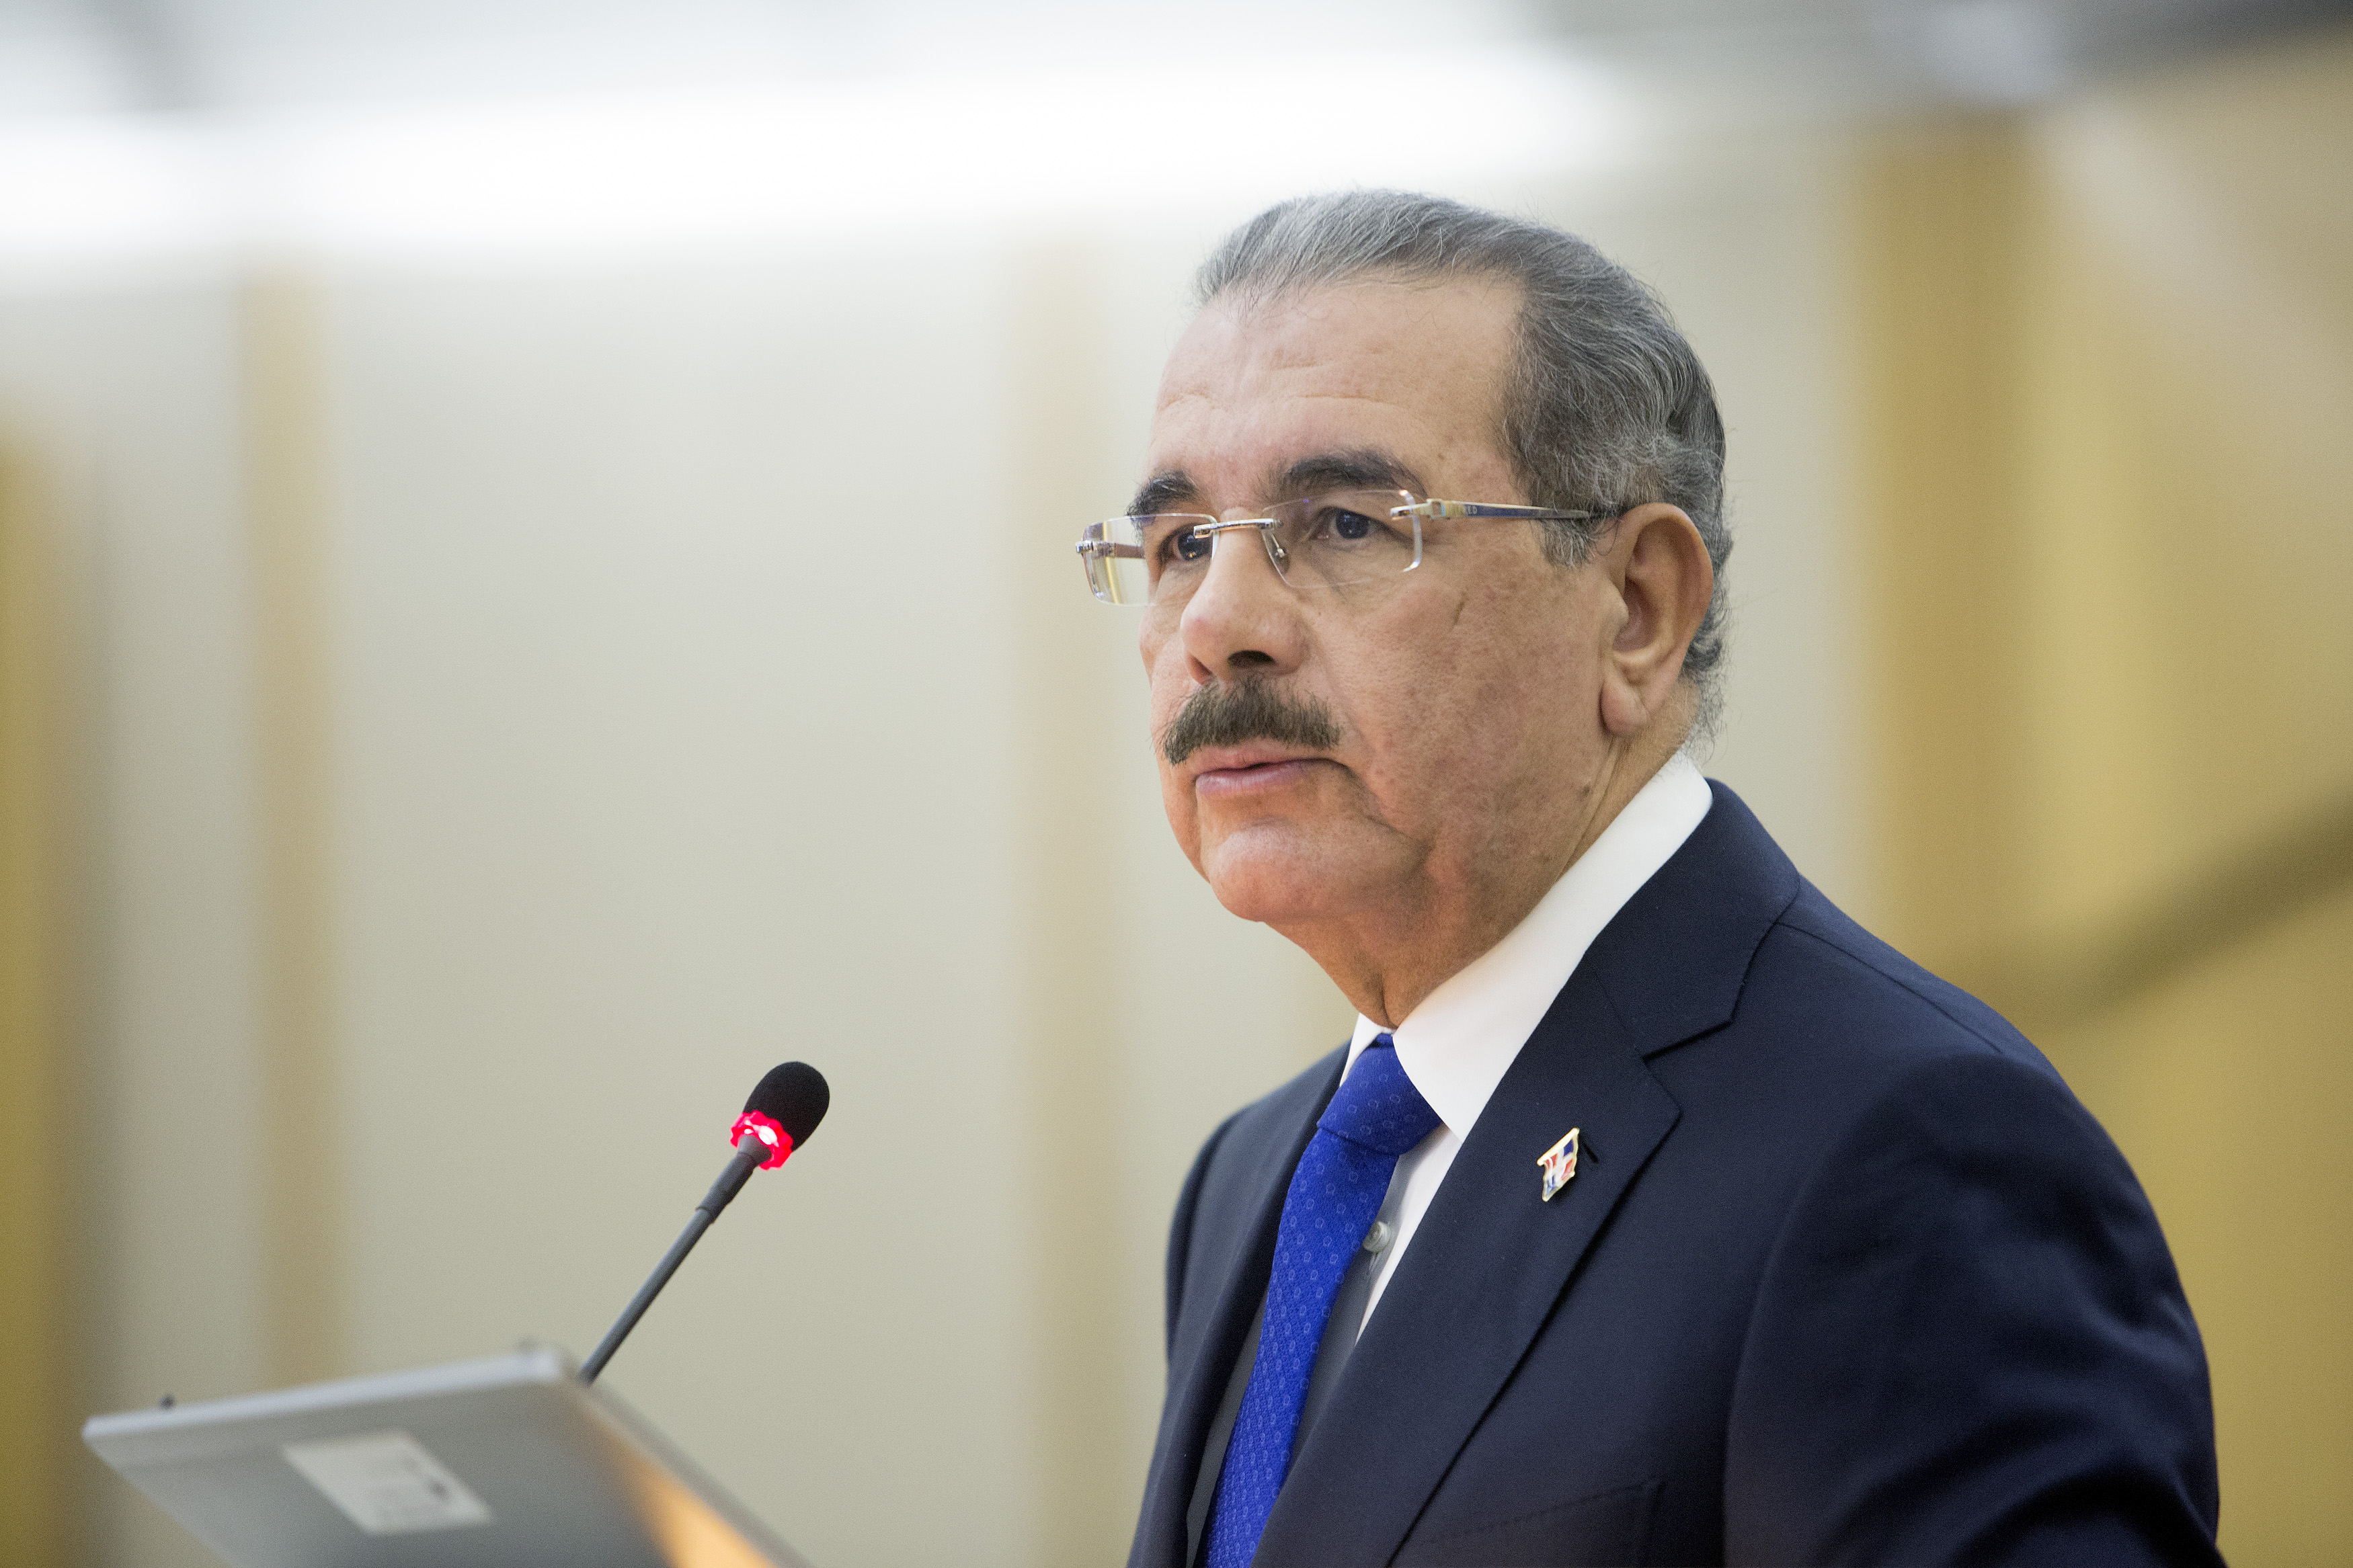 President Danilo Medina (photo credit: The Food and Agriculture Organization of the United Nations/flickr)